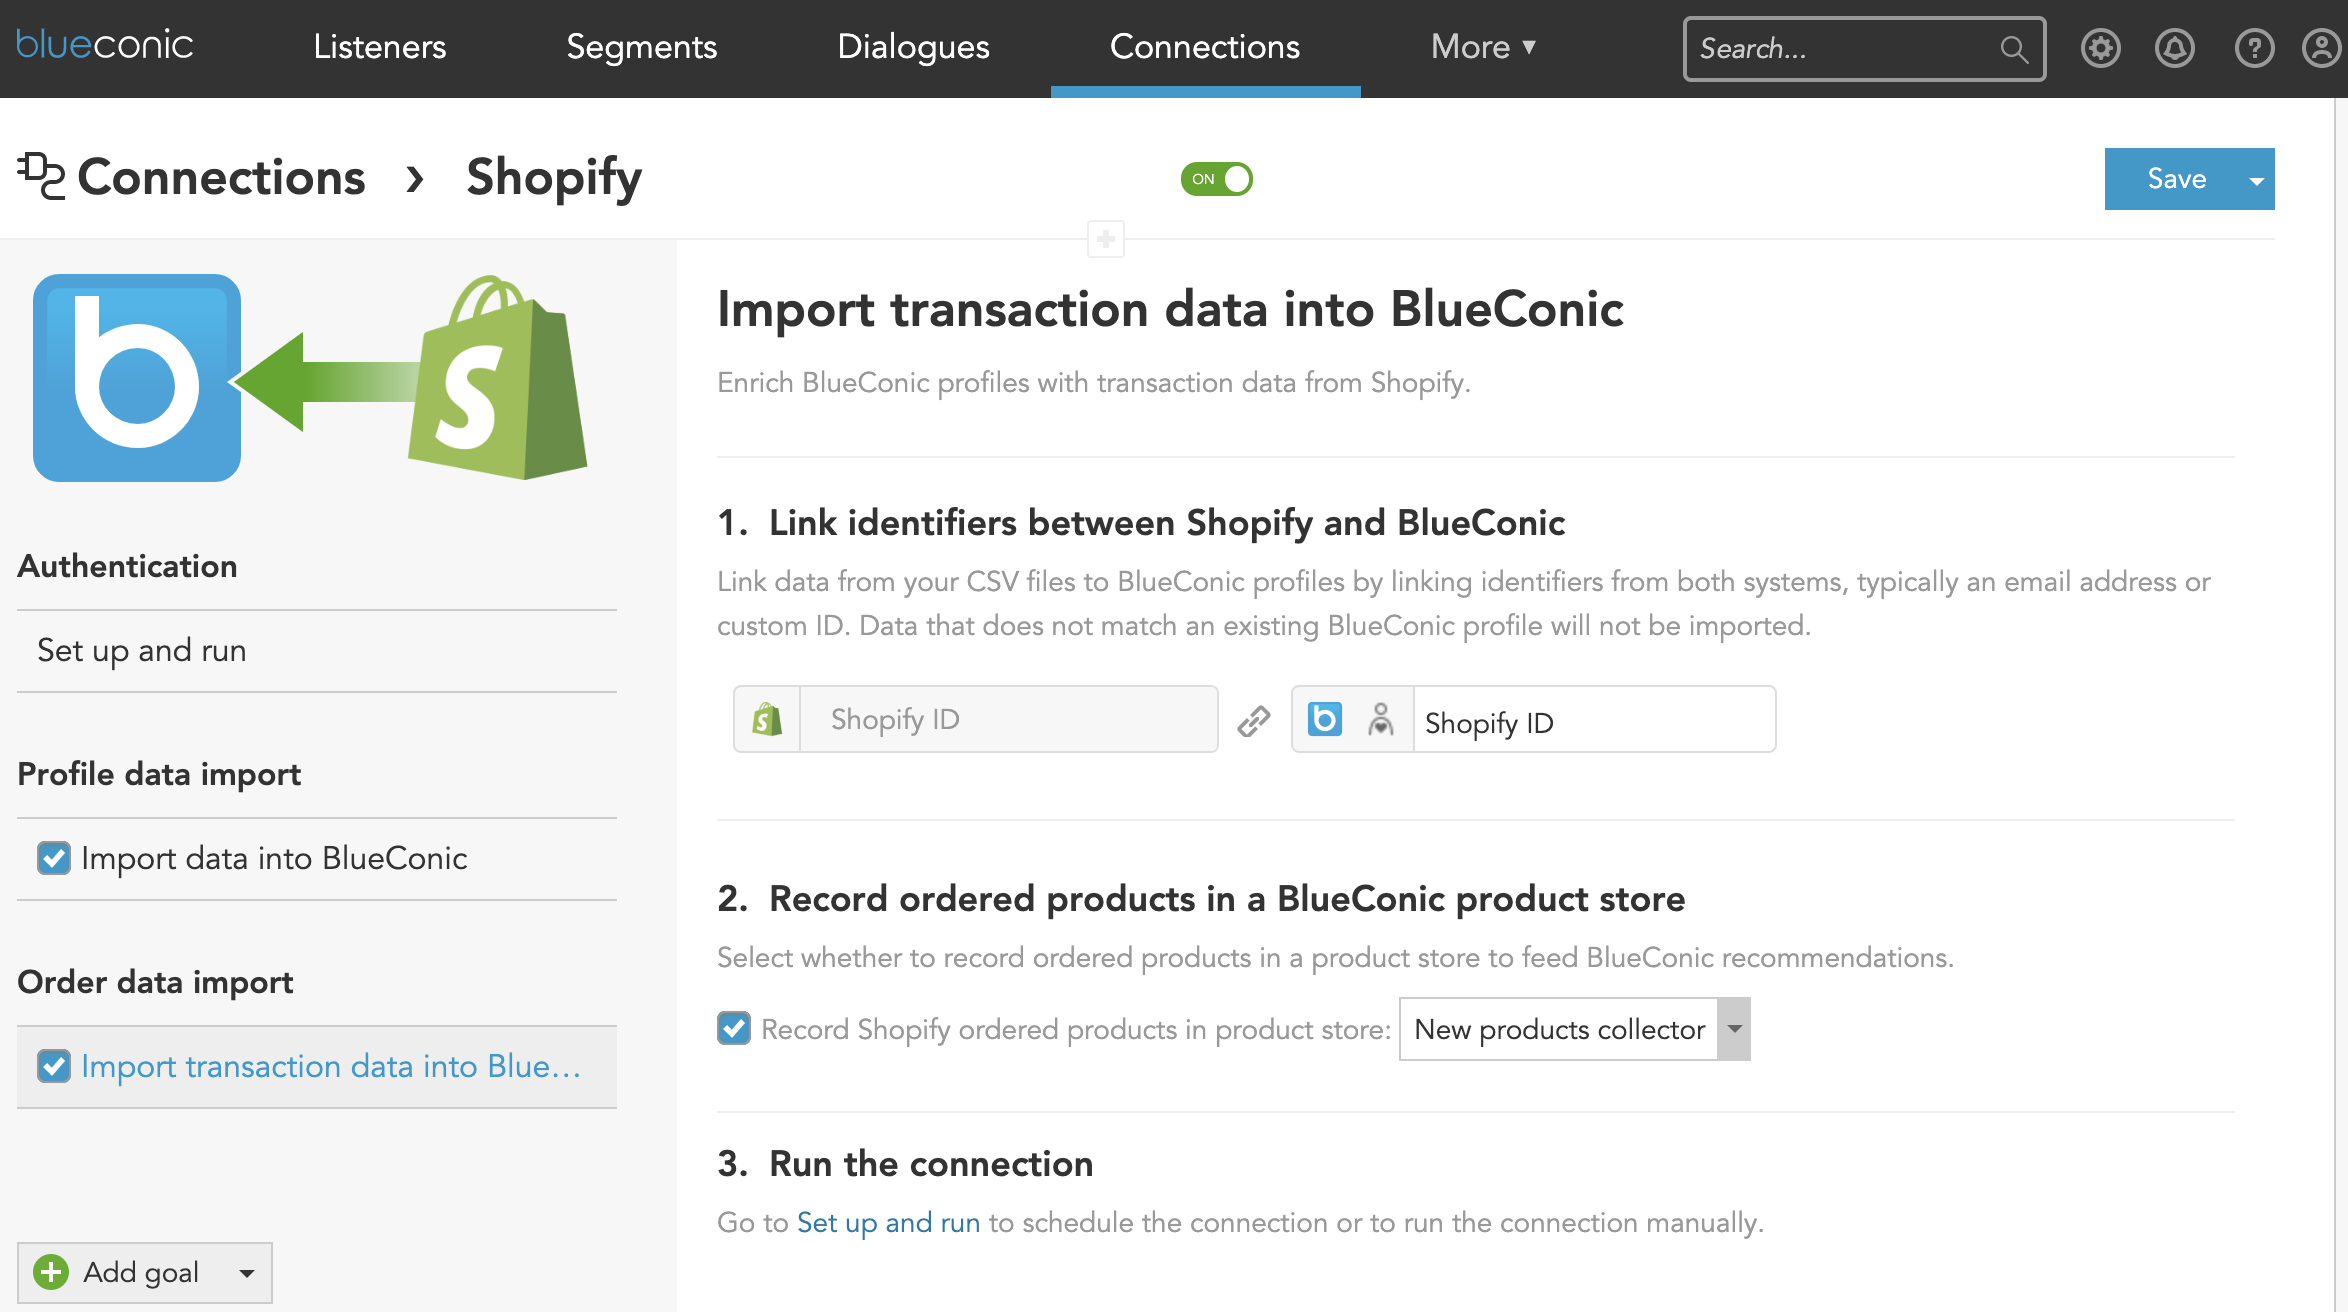 How to import Shopify customer order data into customer profile timelines using the ecommerce Shopify Connection in the BlueConic customer data platform